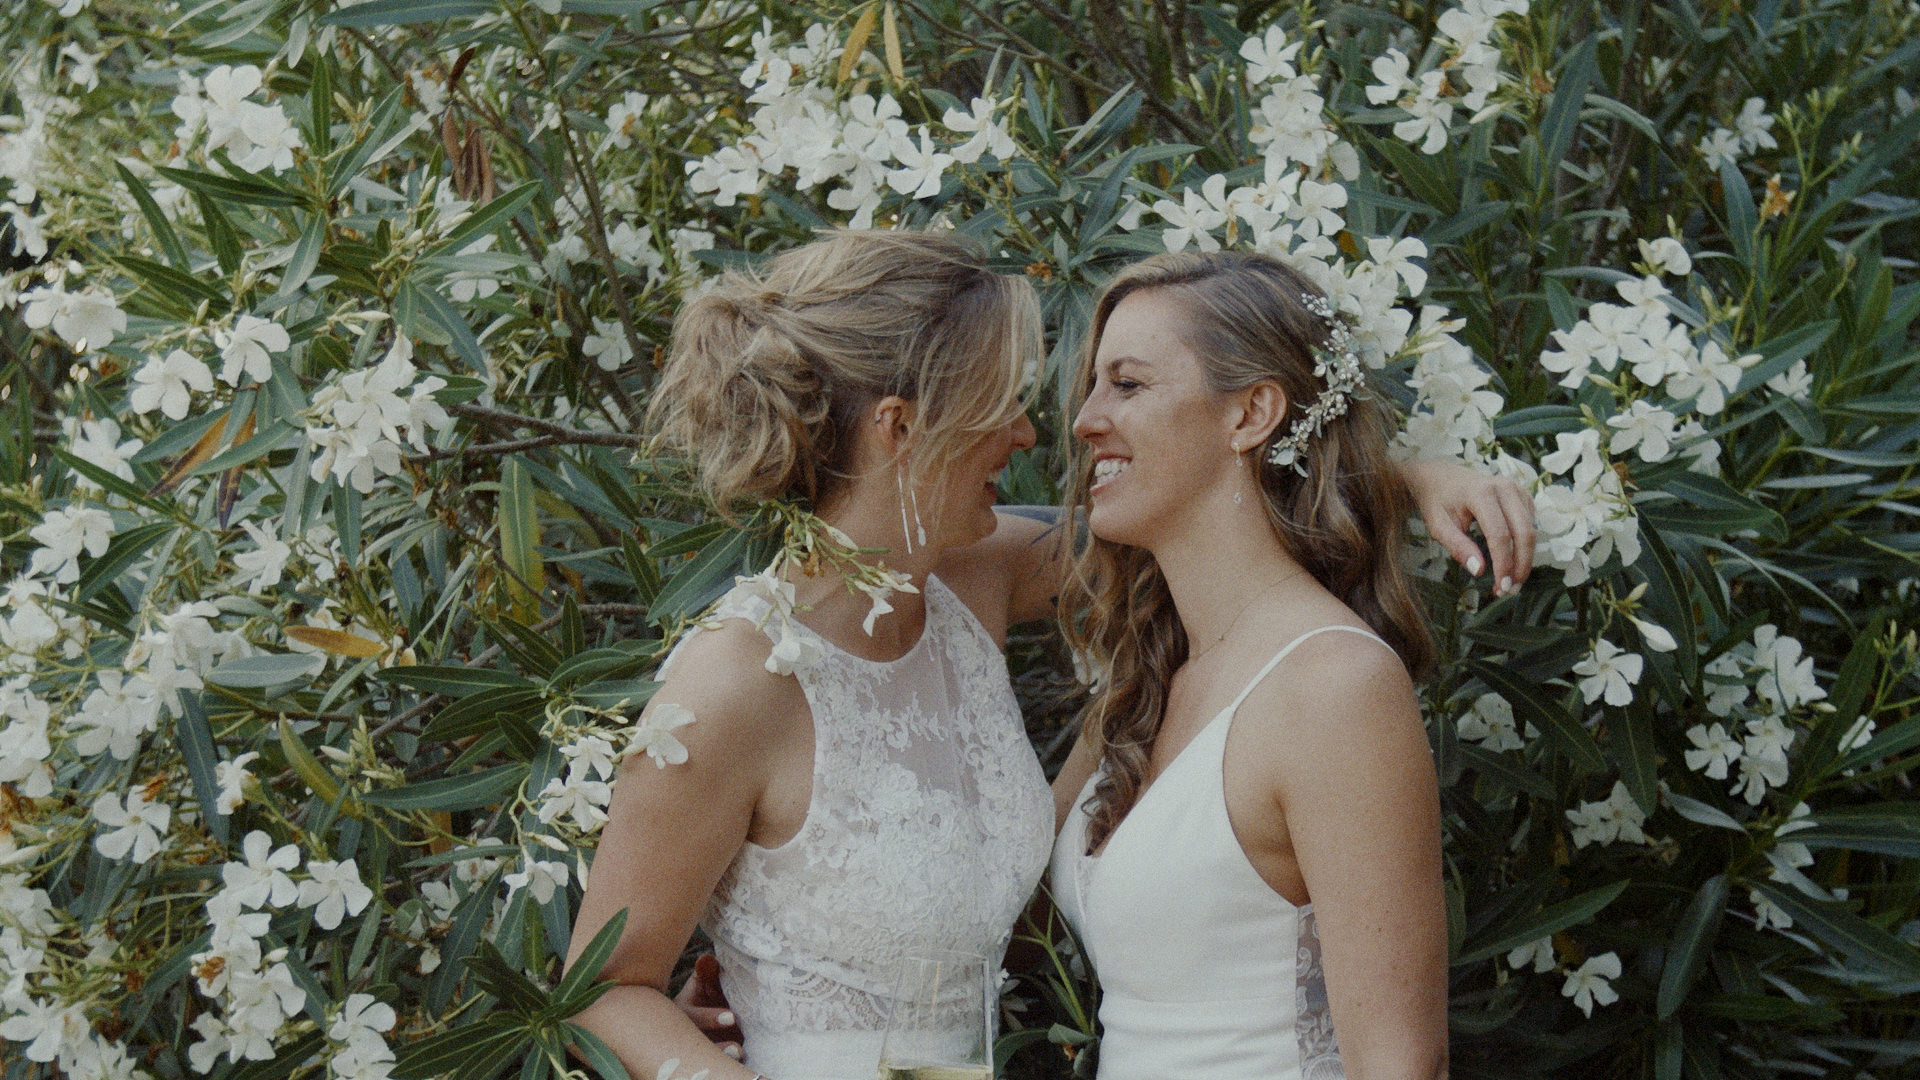 Dana + Kate | Carmel Valley, California | Holly Farm